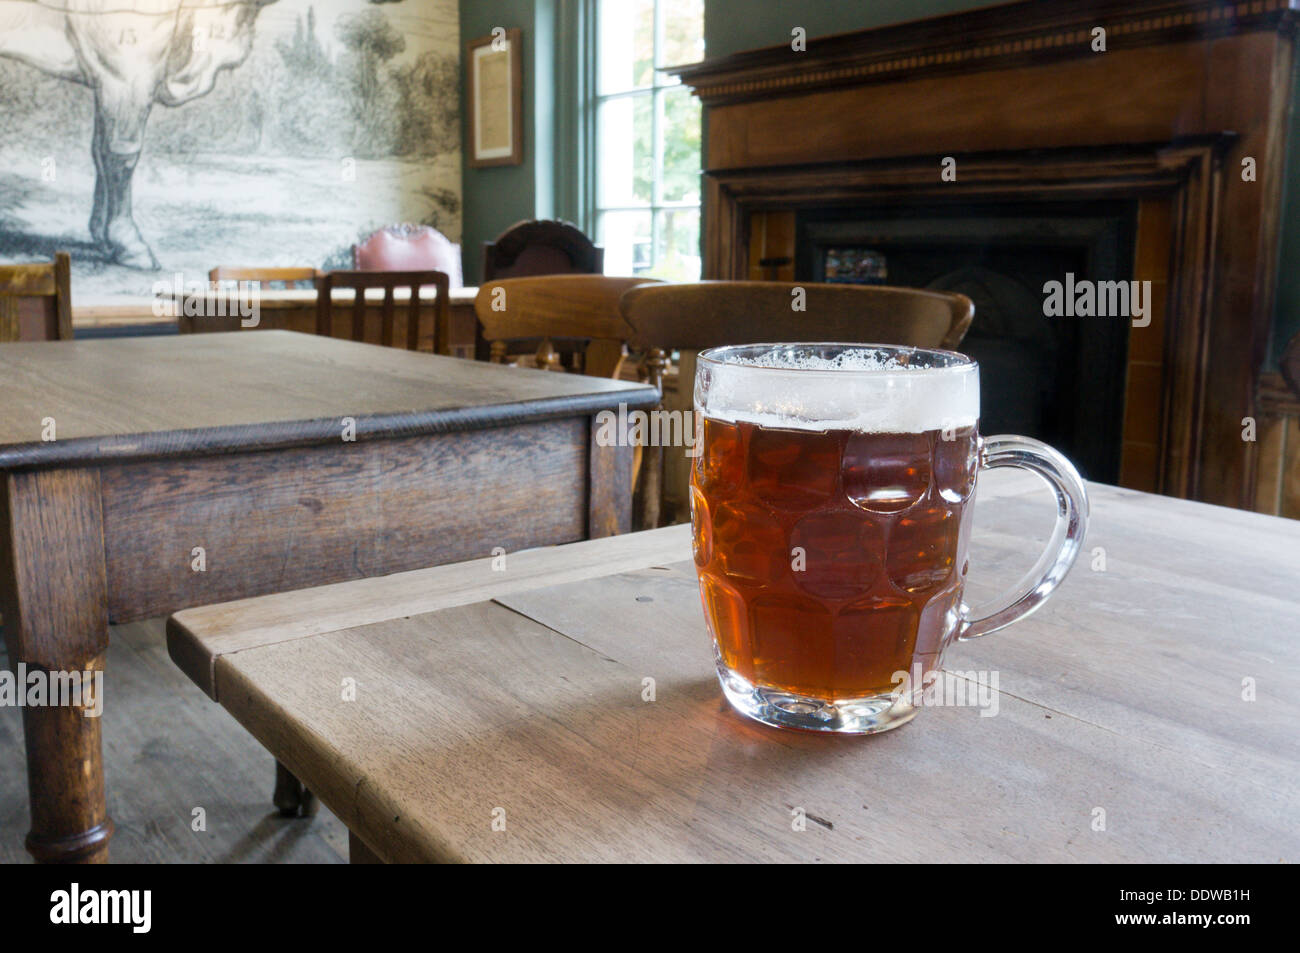 A pint mug of Hare Ale in the Hare and Billet pub at Blackheath, south London.. - Stock Image